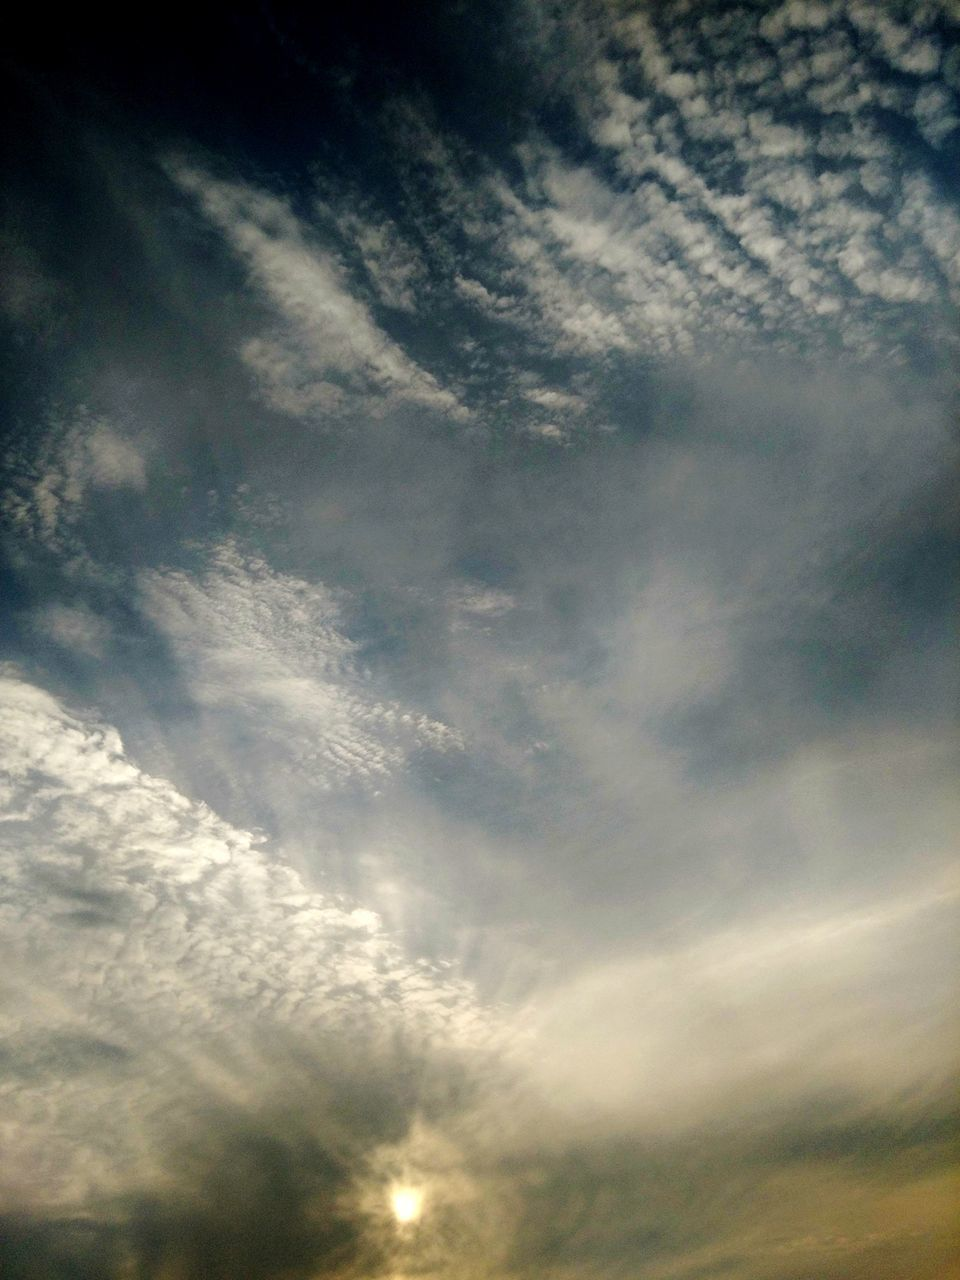 cloud - sky, sky, beauty in nature, nature, low angle view, no people, backgrounds, scenics, tranquility, outdoors, sky only, day, sunset